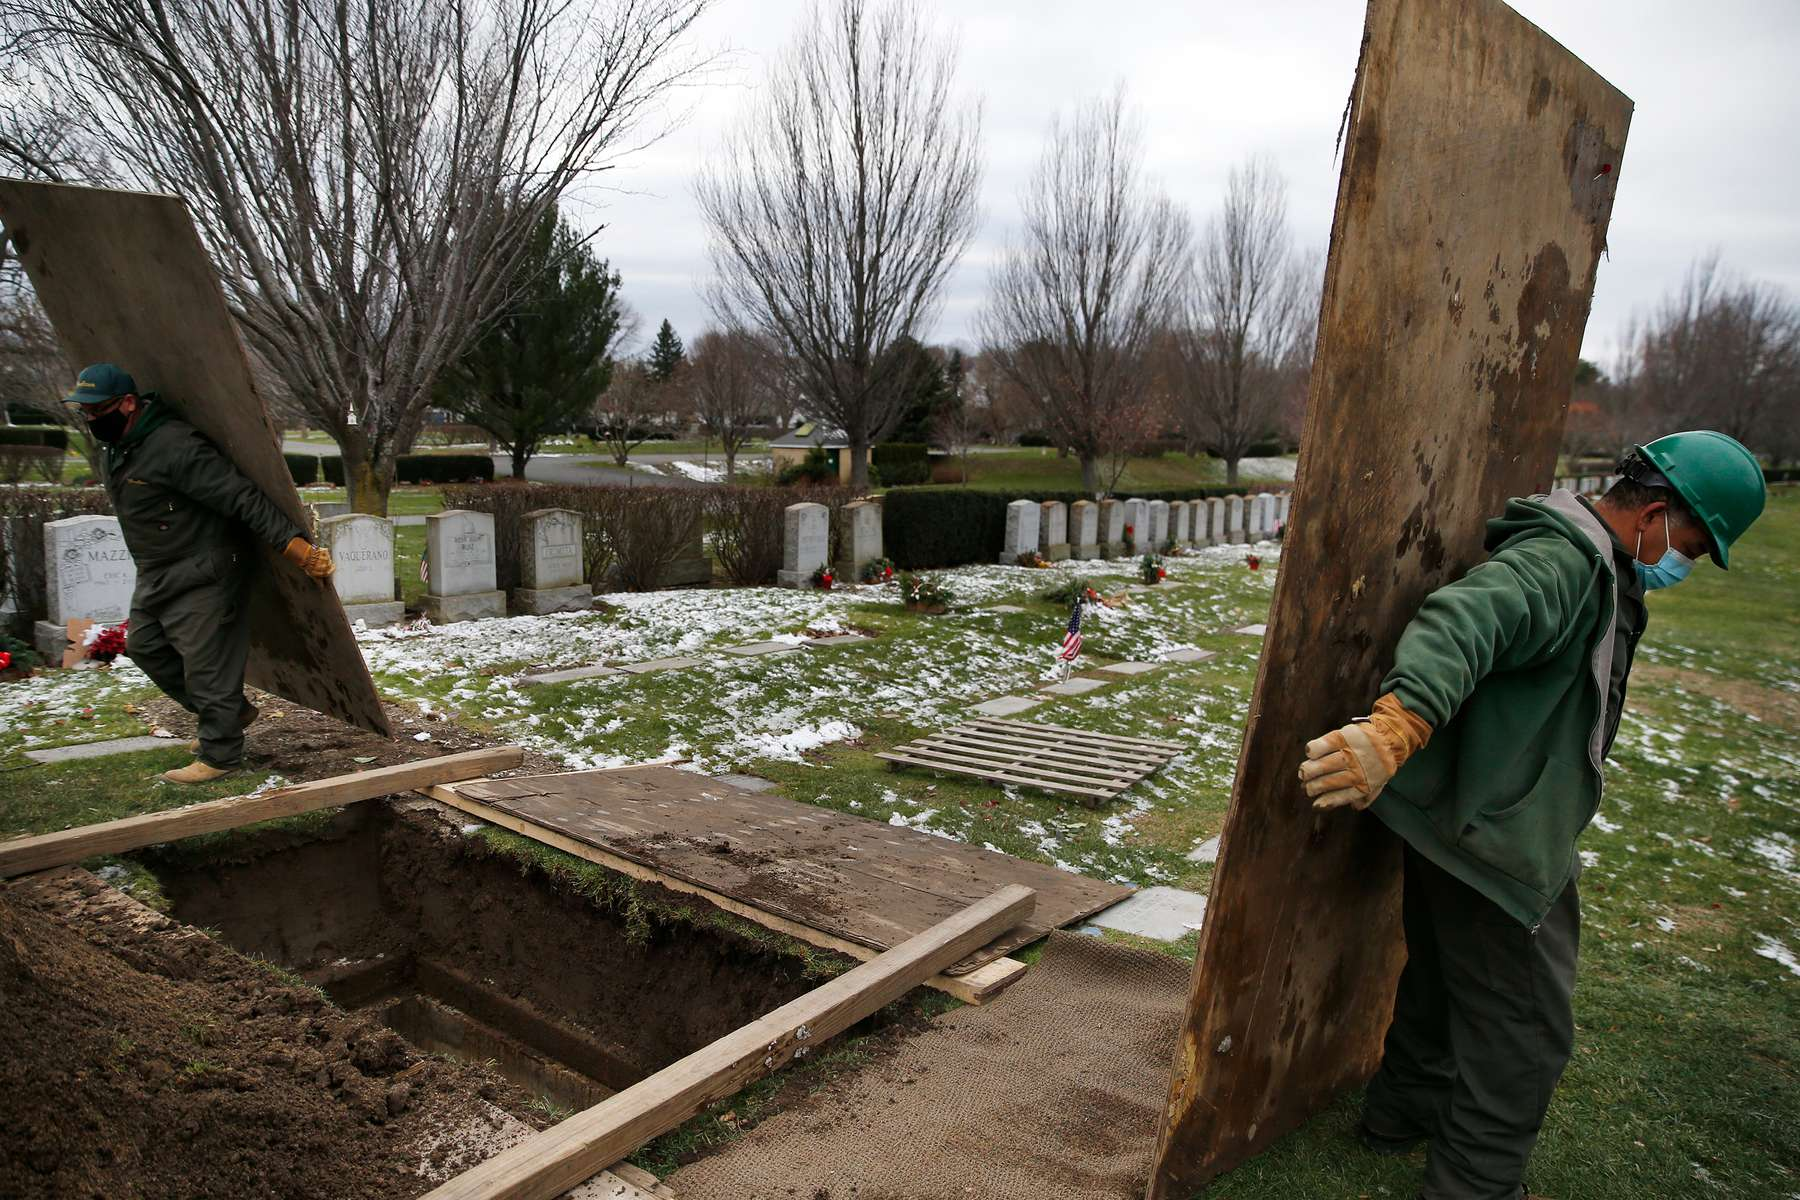 Everett, MA--12/8/20-- Roberto Arias (R) and Sean O'Donnell move pieces of wood in order to cover a grave that they've prepared for a burial that will take place the following day at Woodlawn Cemetery for a man who died of COVID-19.